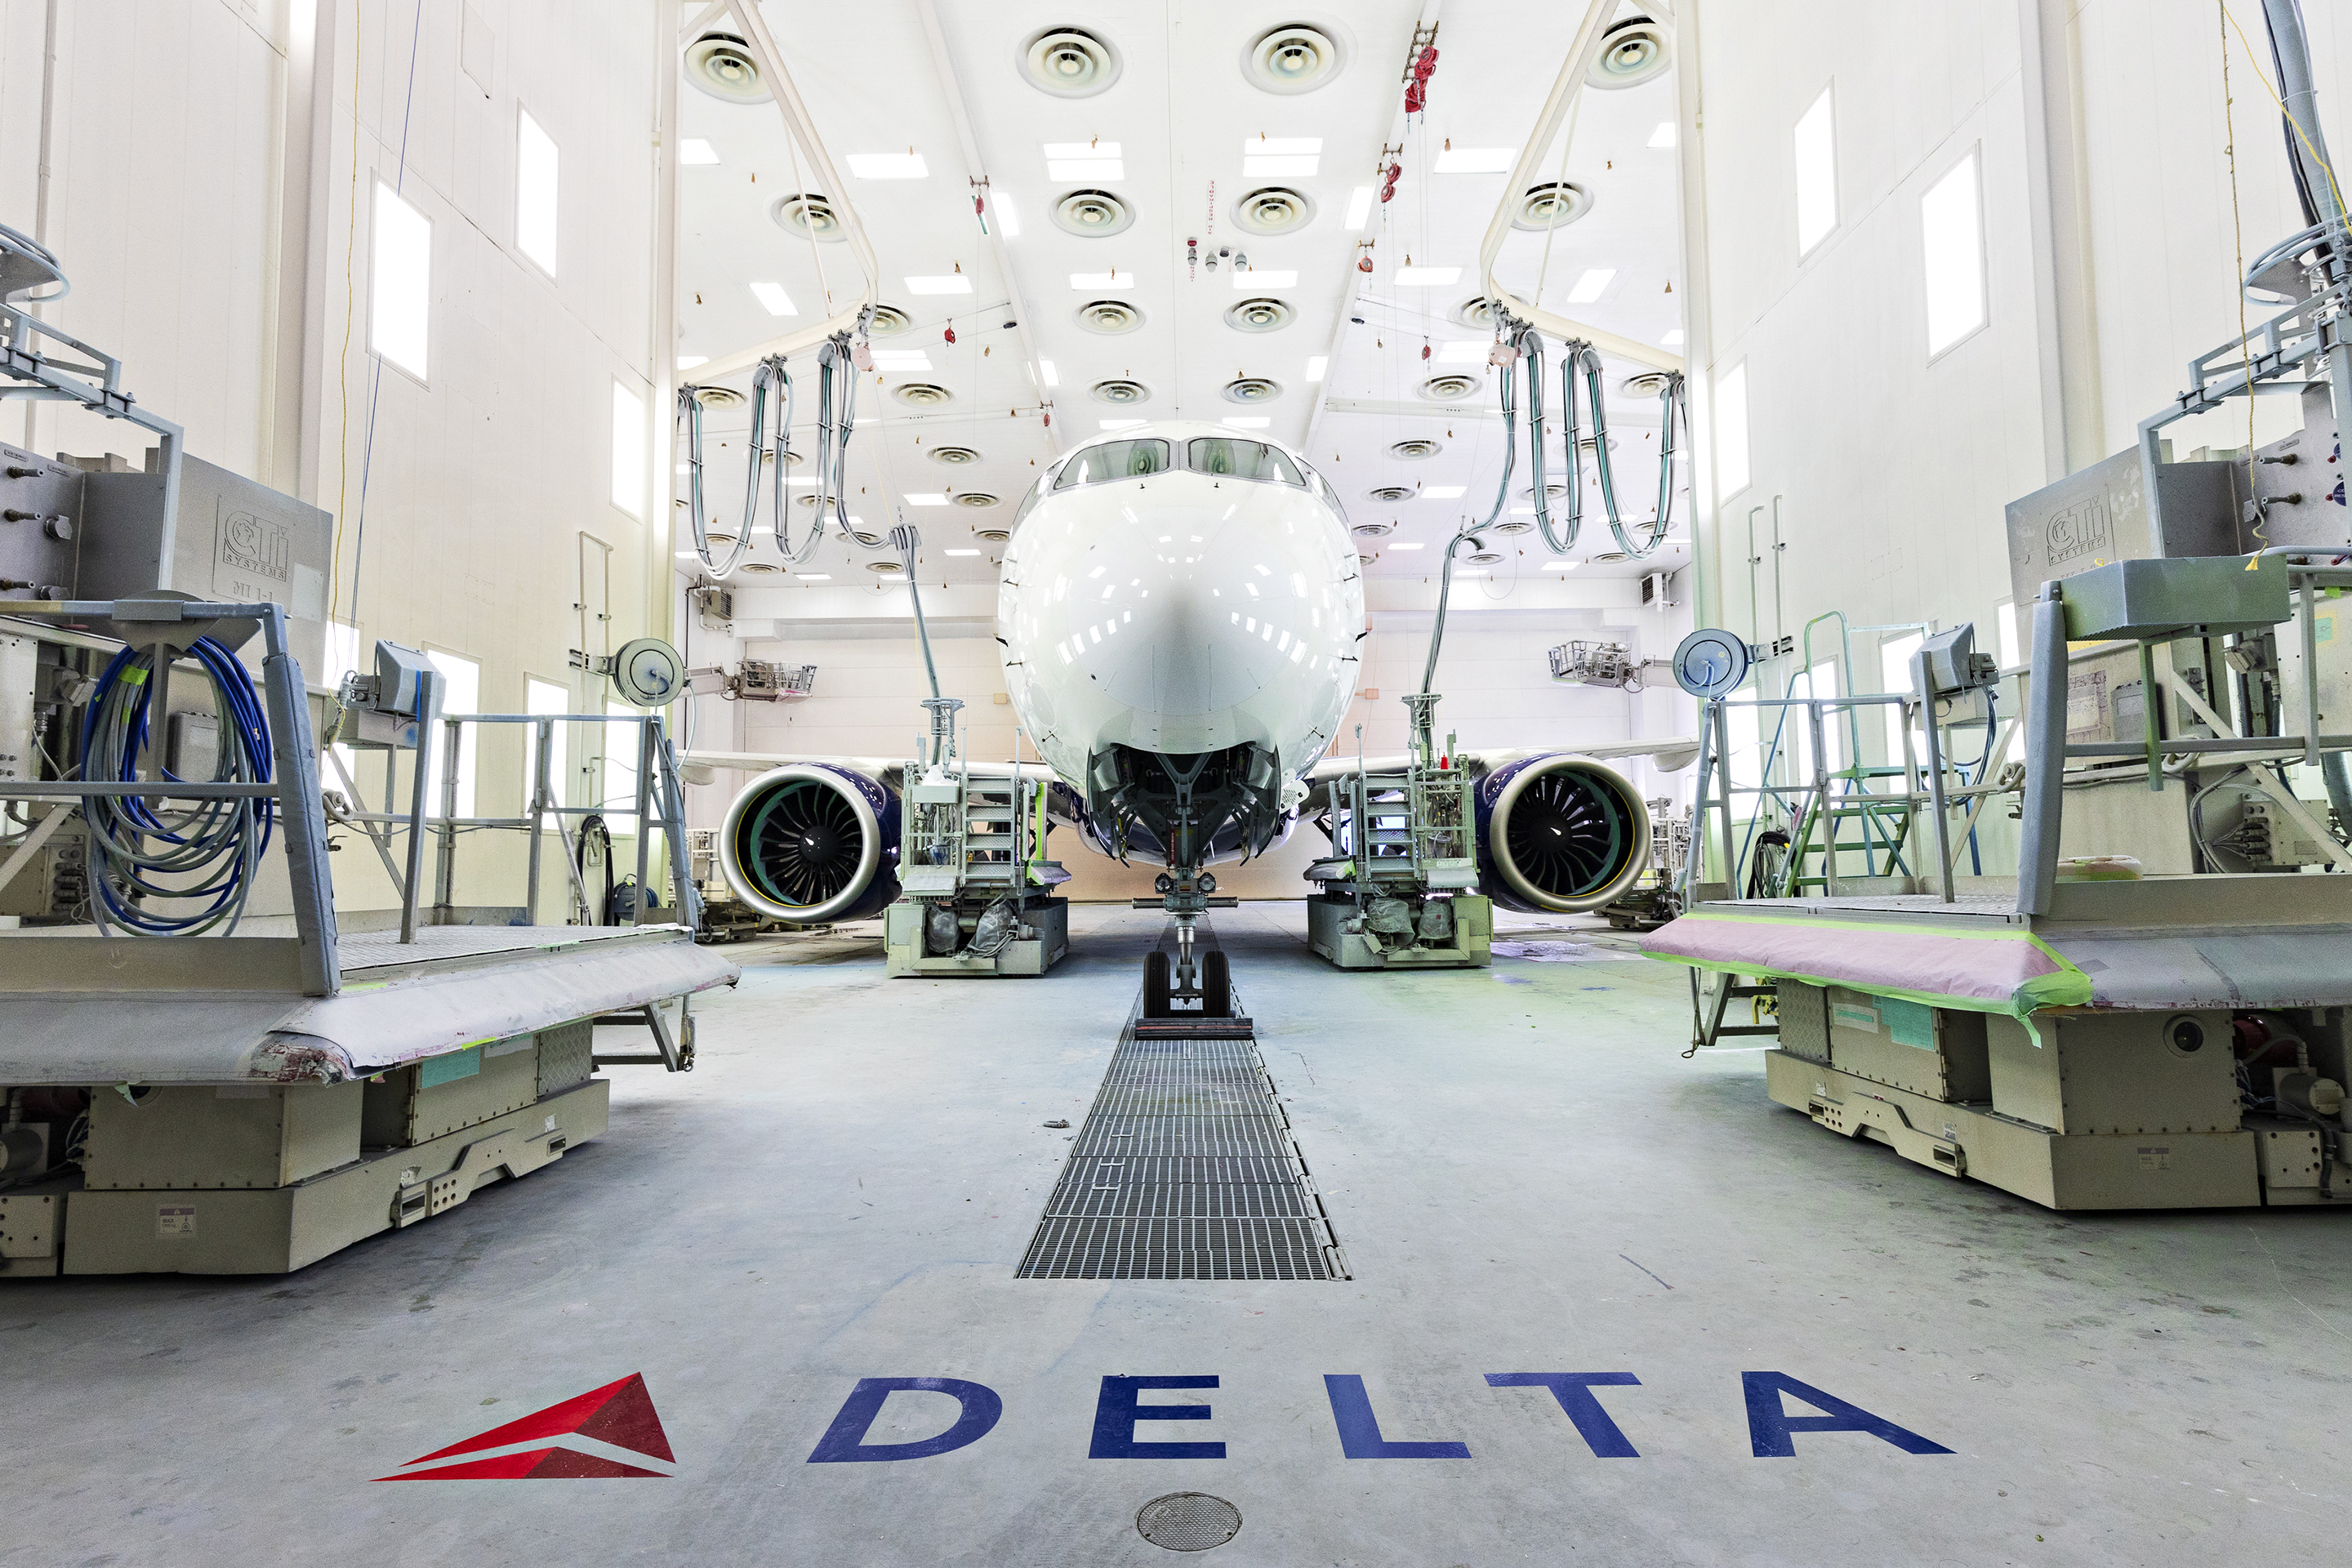 Delta Buckles Up For Turbulence | Fortune